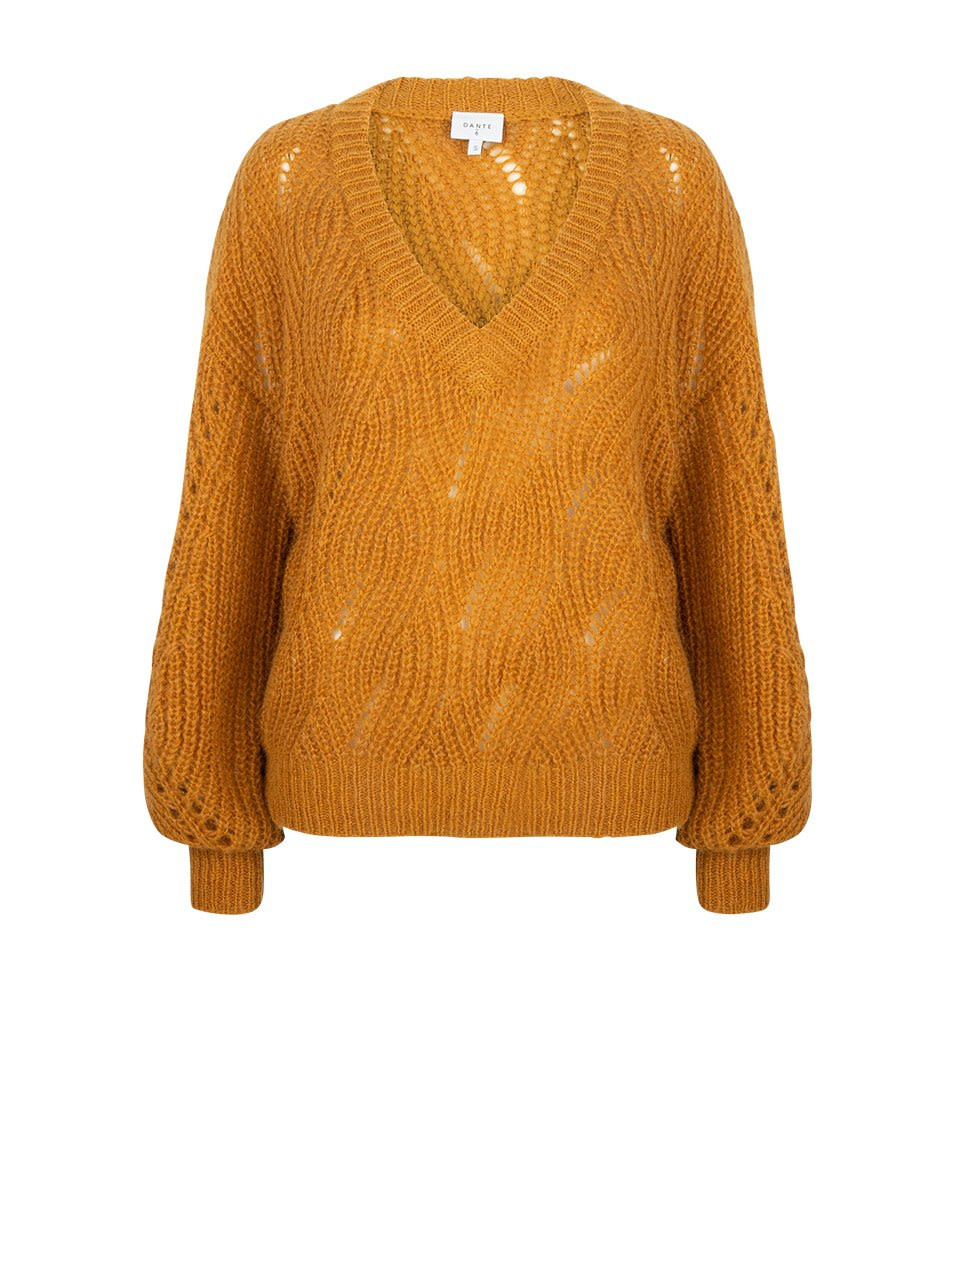 Eras cable sweater-1